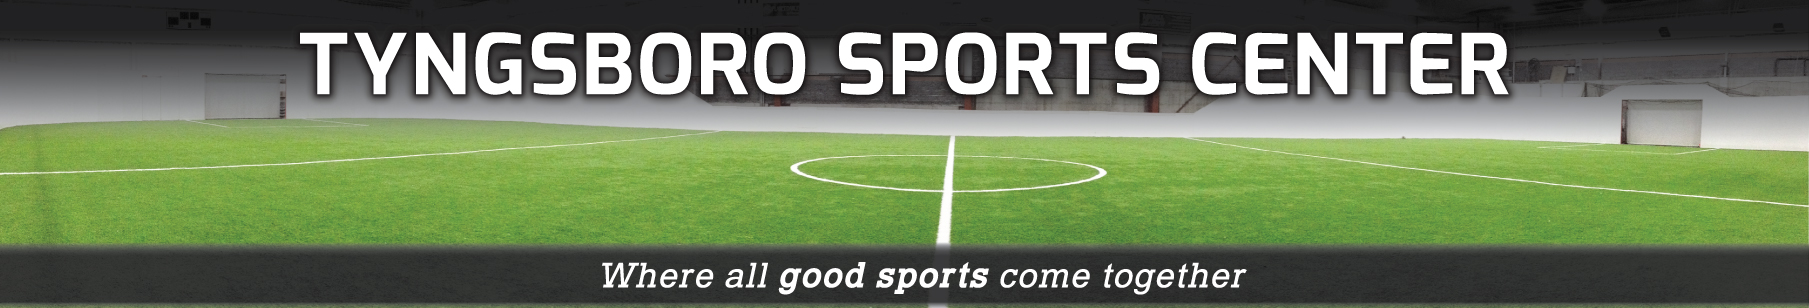 Tyngsboro Sports Center, Soccer, Goal, Field